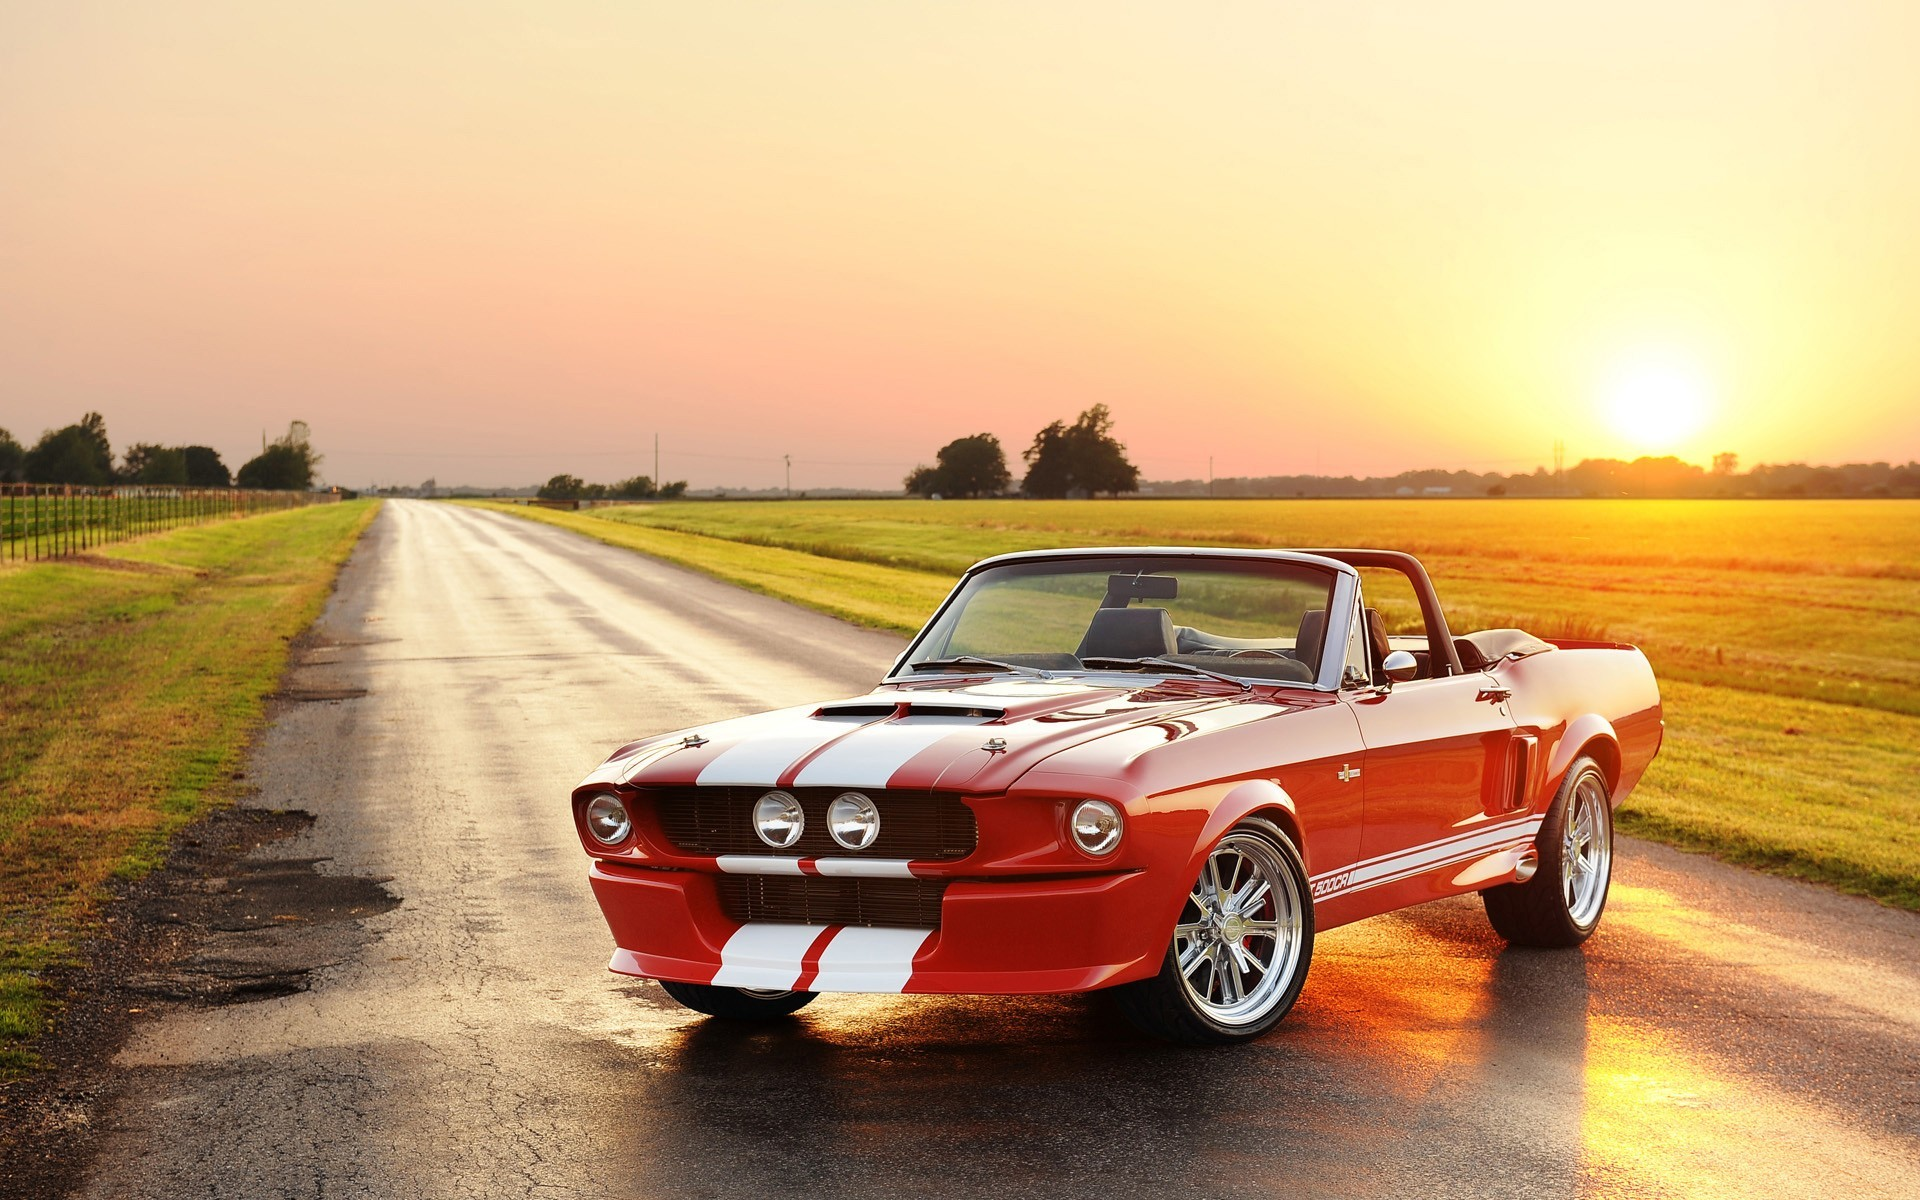 2012 classic shelby gt convertible wallpaper – cas wallpaper hd, ford  wallpaper, pictures of cars